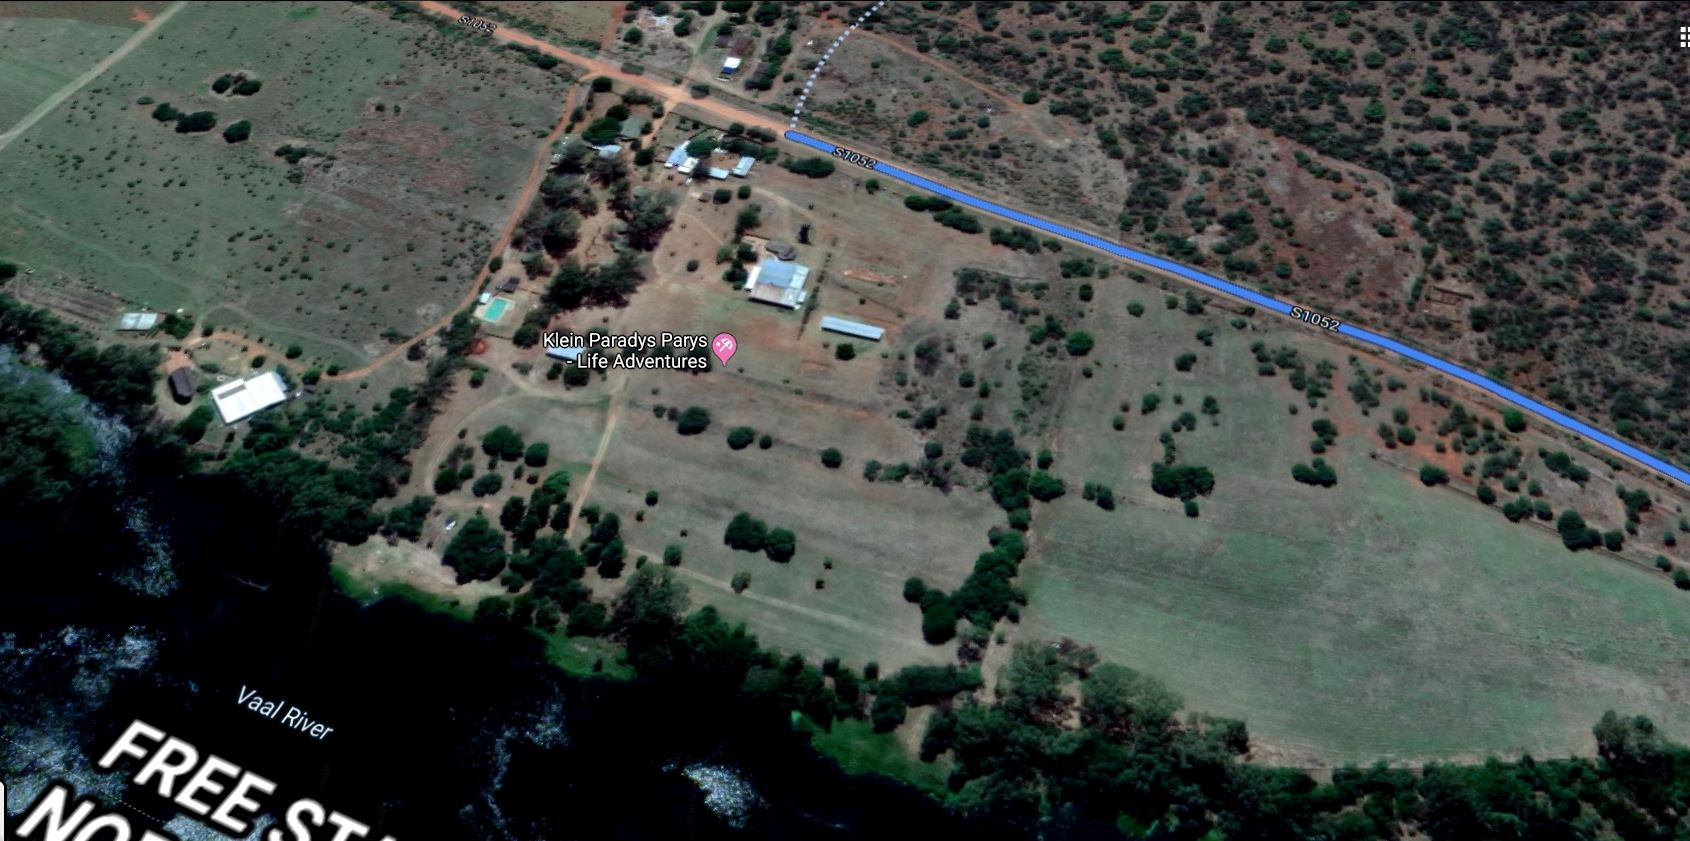 Google view showing property